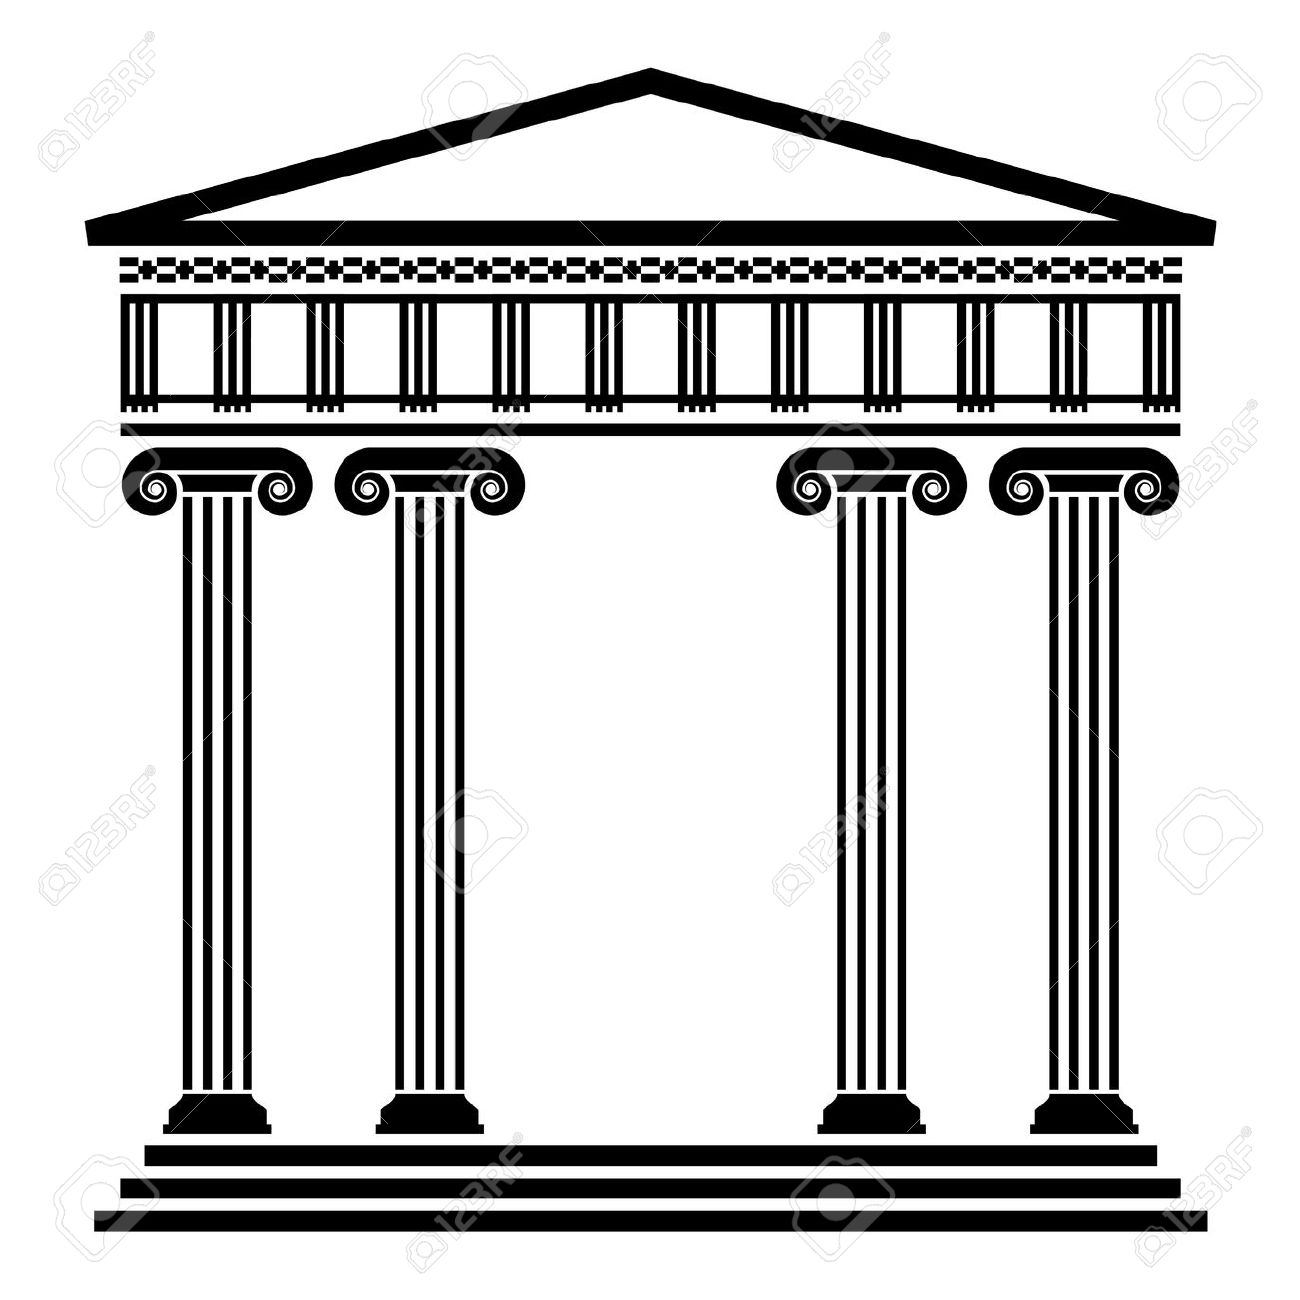 Parthenon clipart palace Ancient  Free Greek Royalty